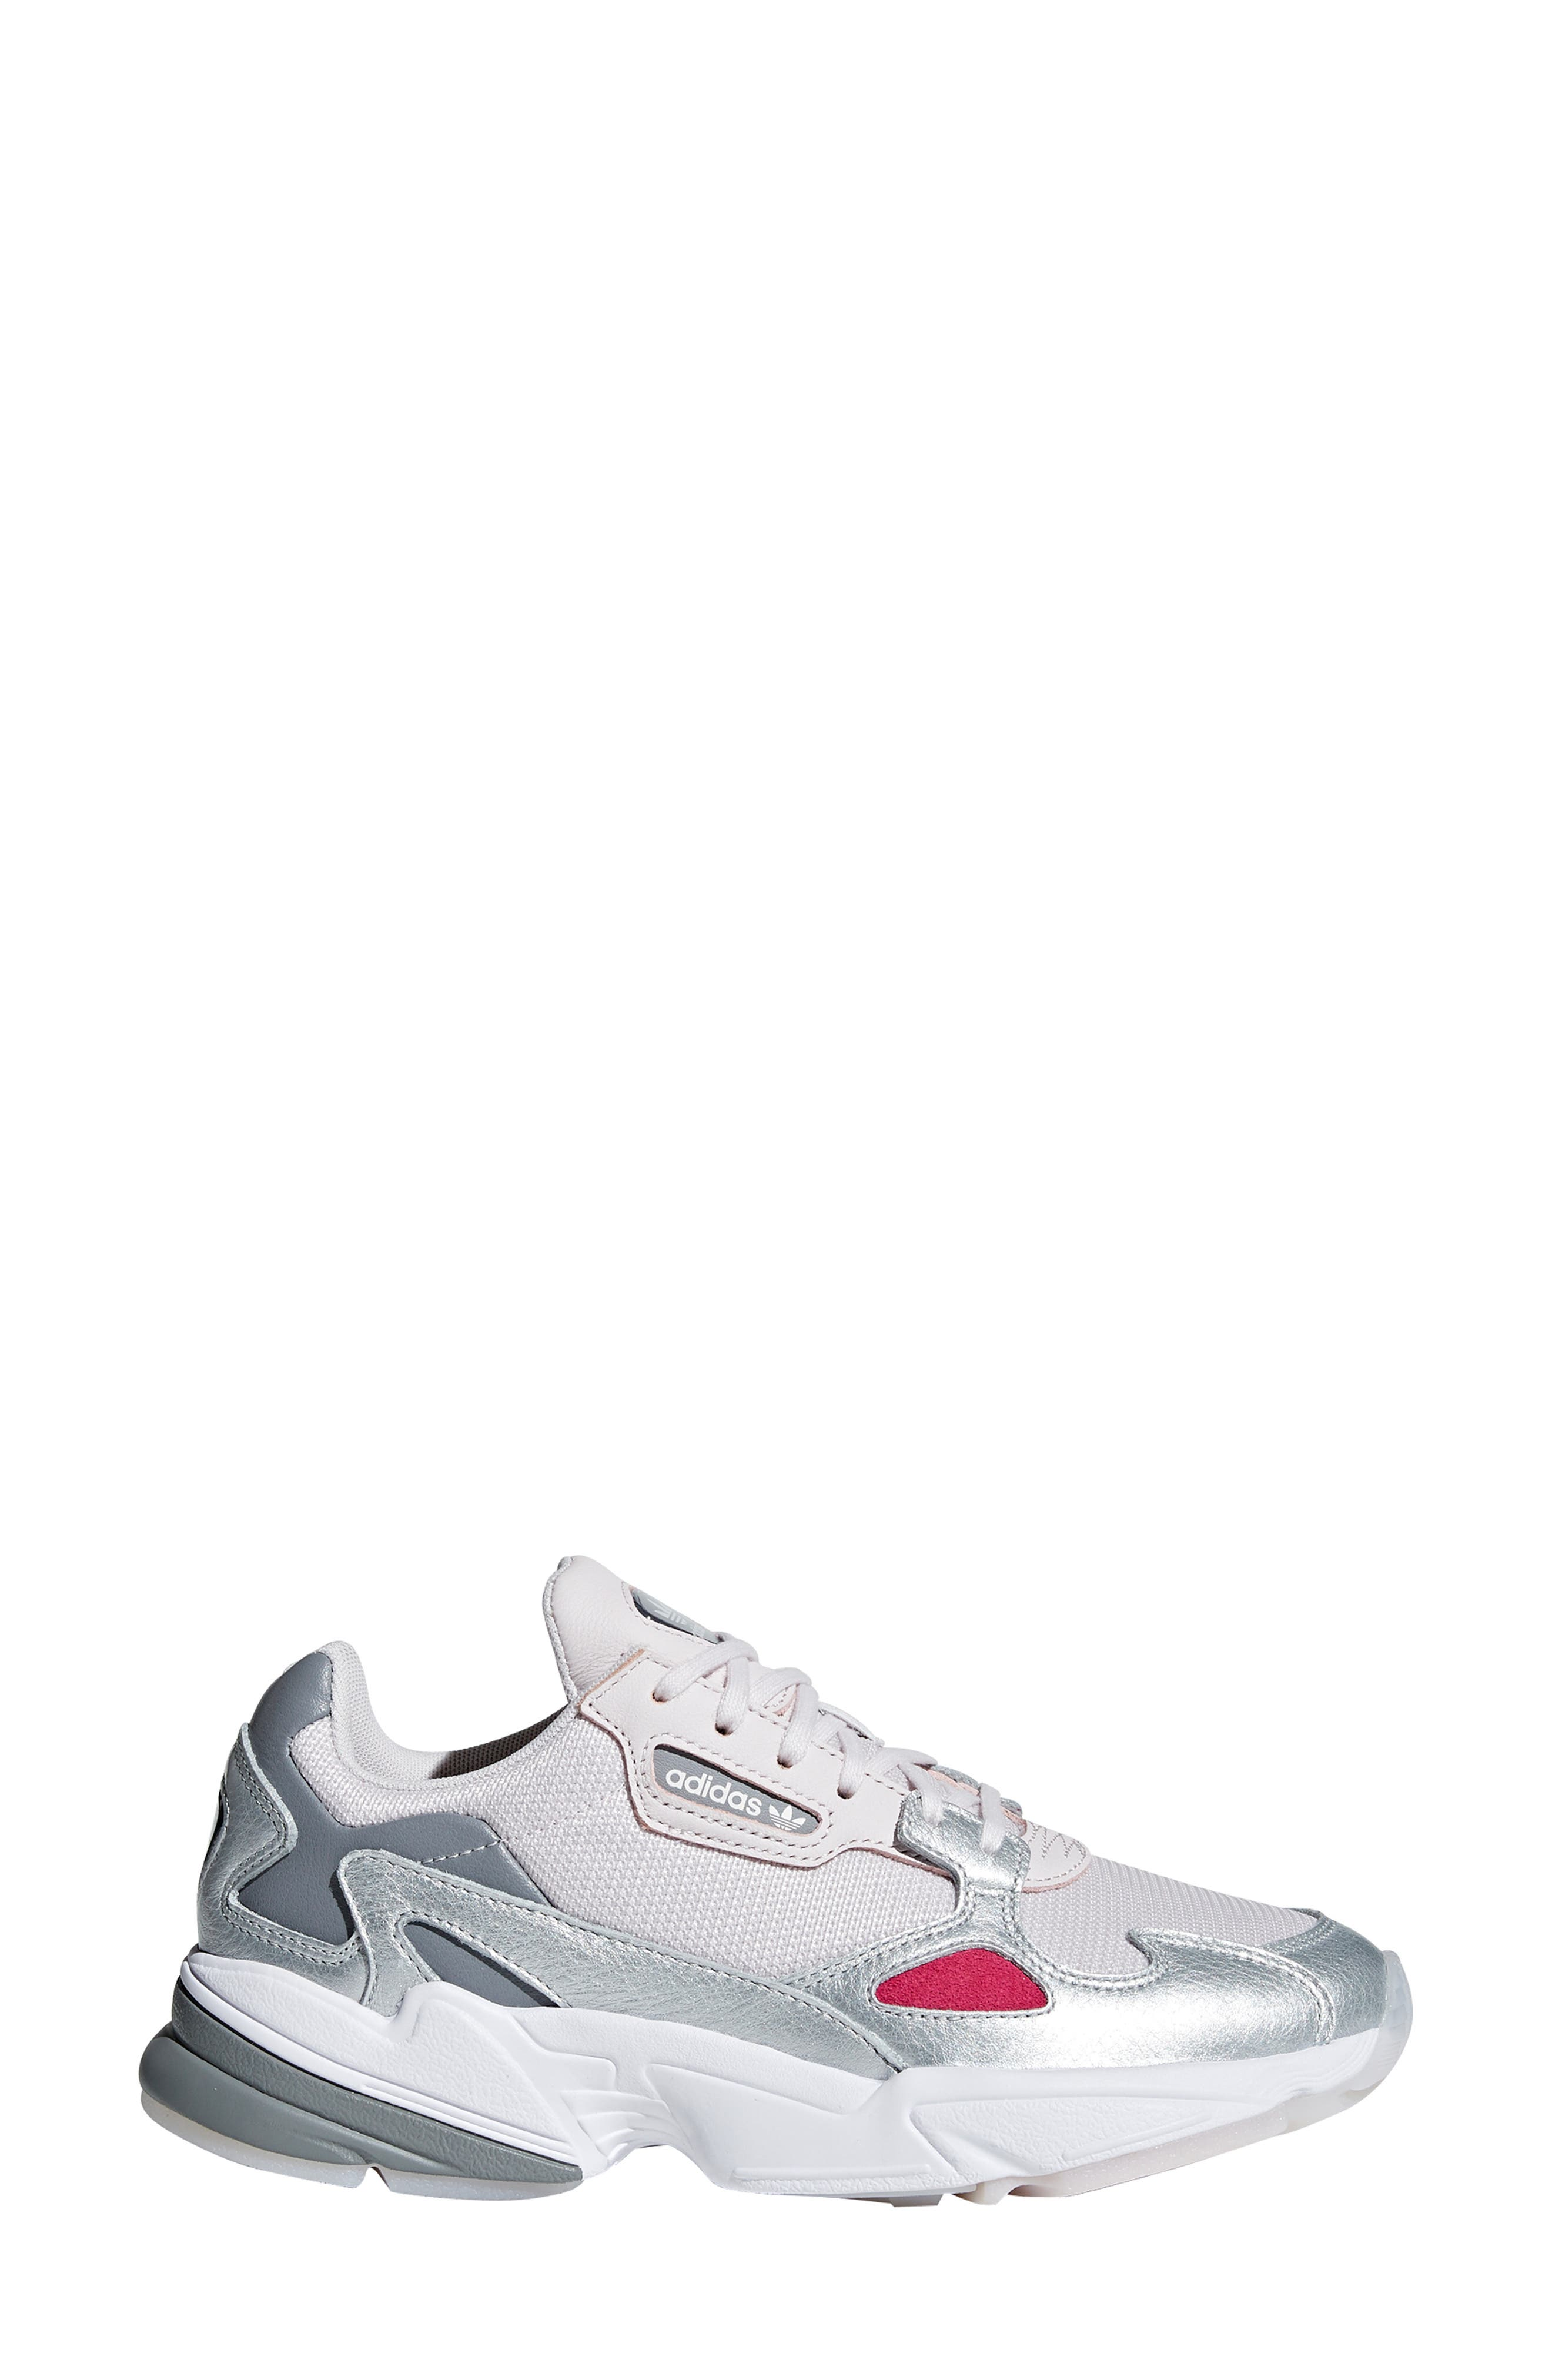 Falcon Sneaker,                             Alternate thumbnail 7, color,                             ORCHID TINT/ SILVER